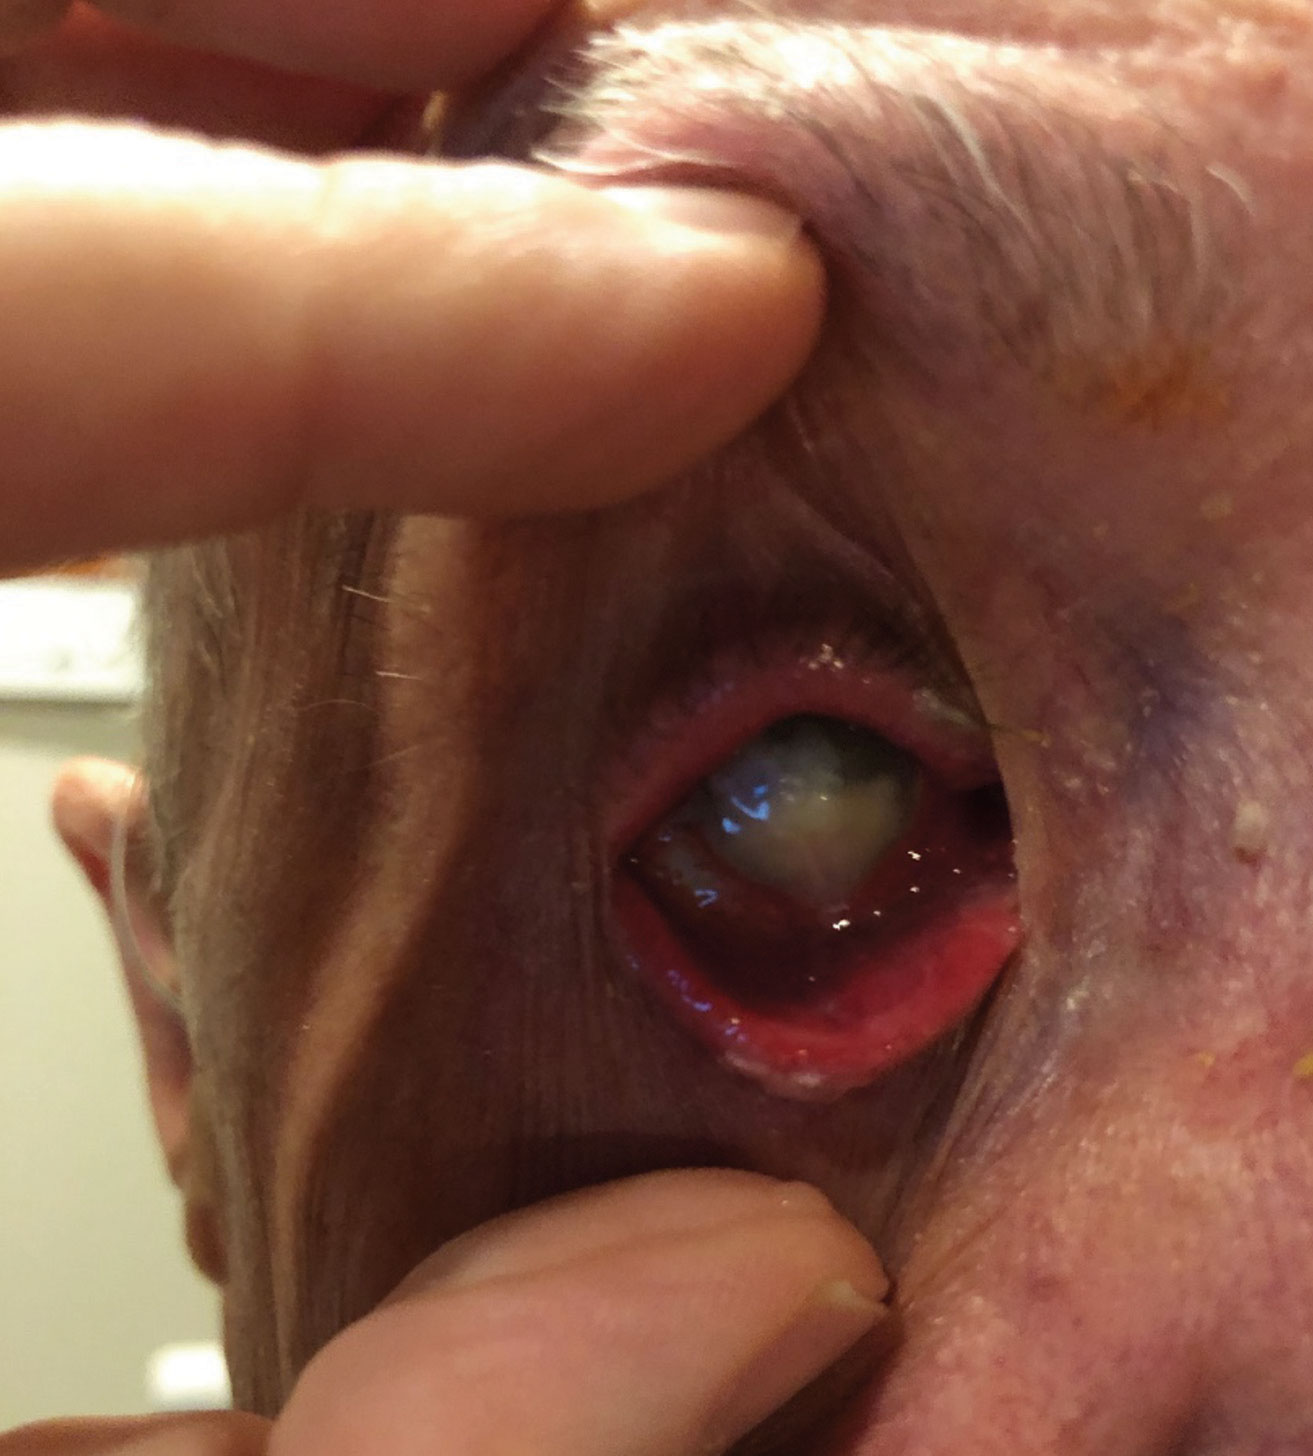 This patient presented with severe pain secondary to endophthalmitis that he developed after being noncompliant following a corneal transplant.